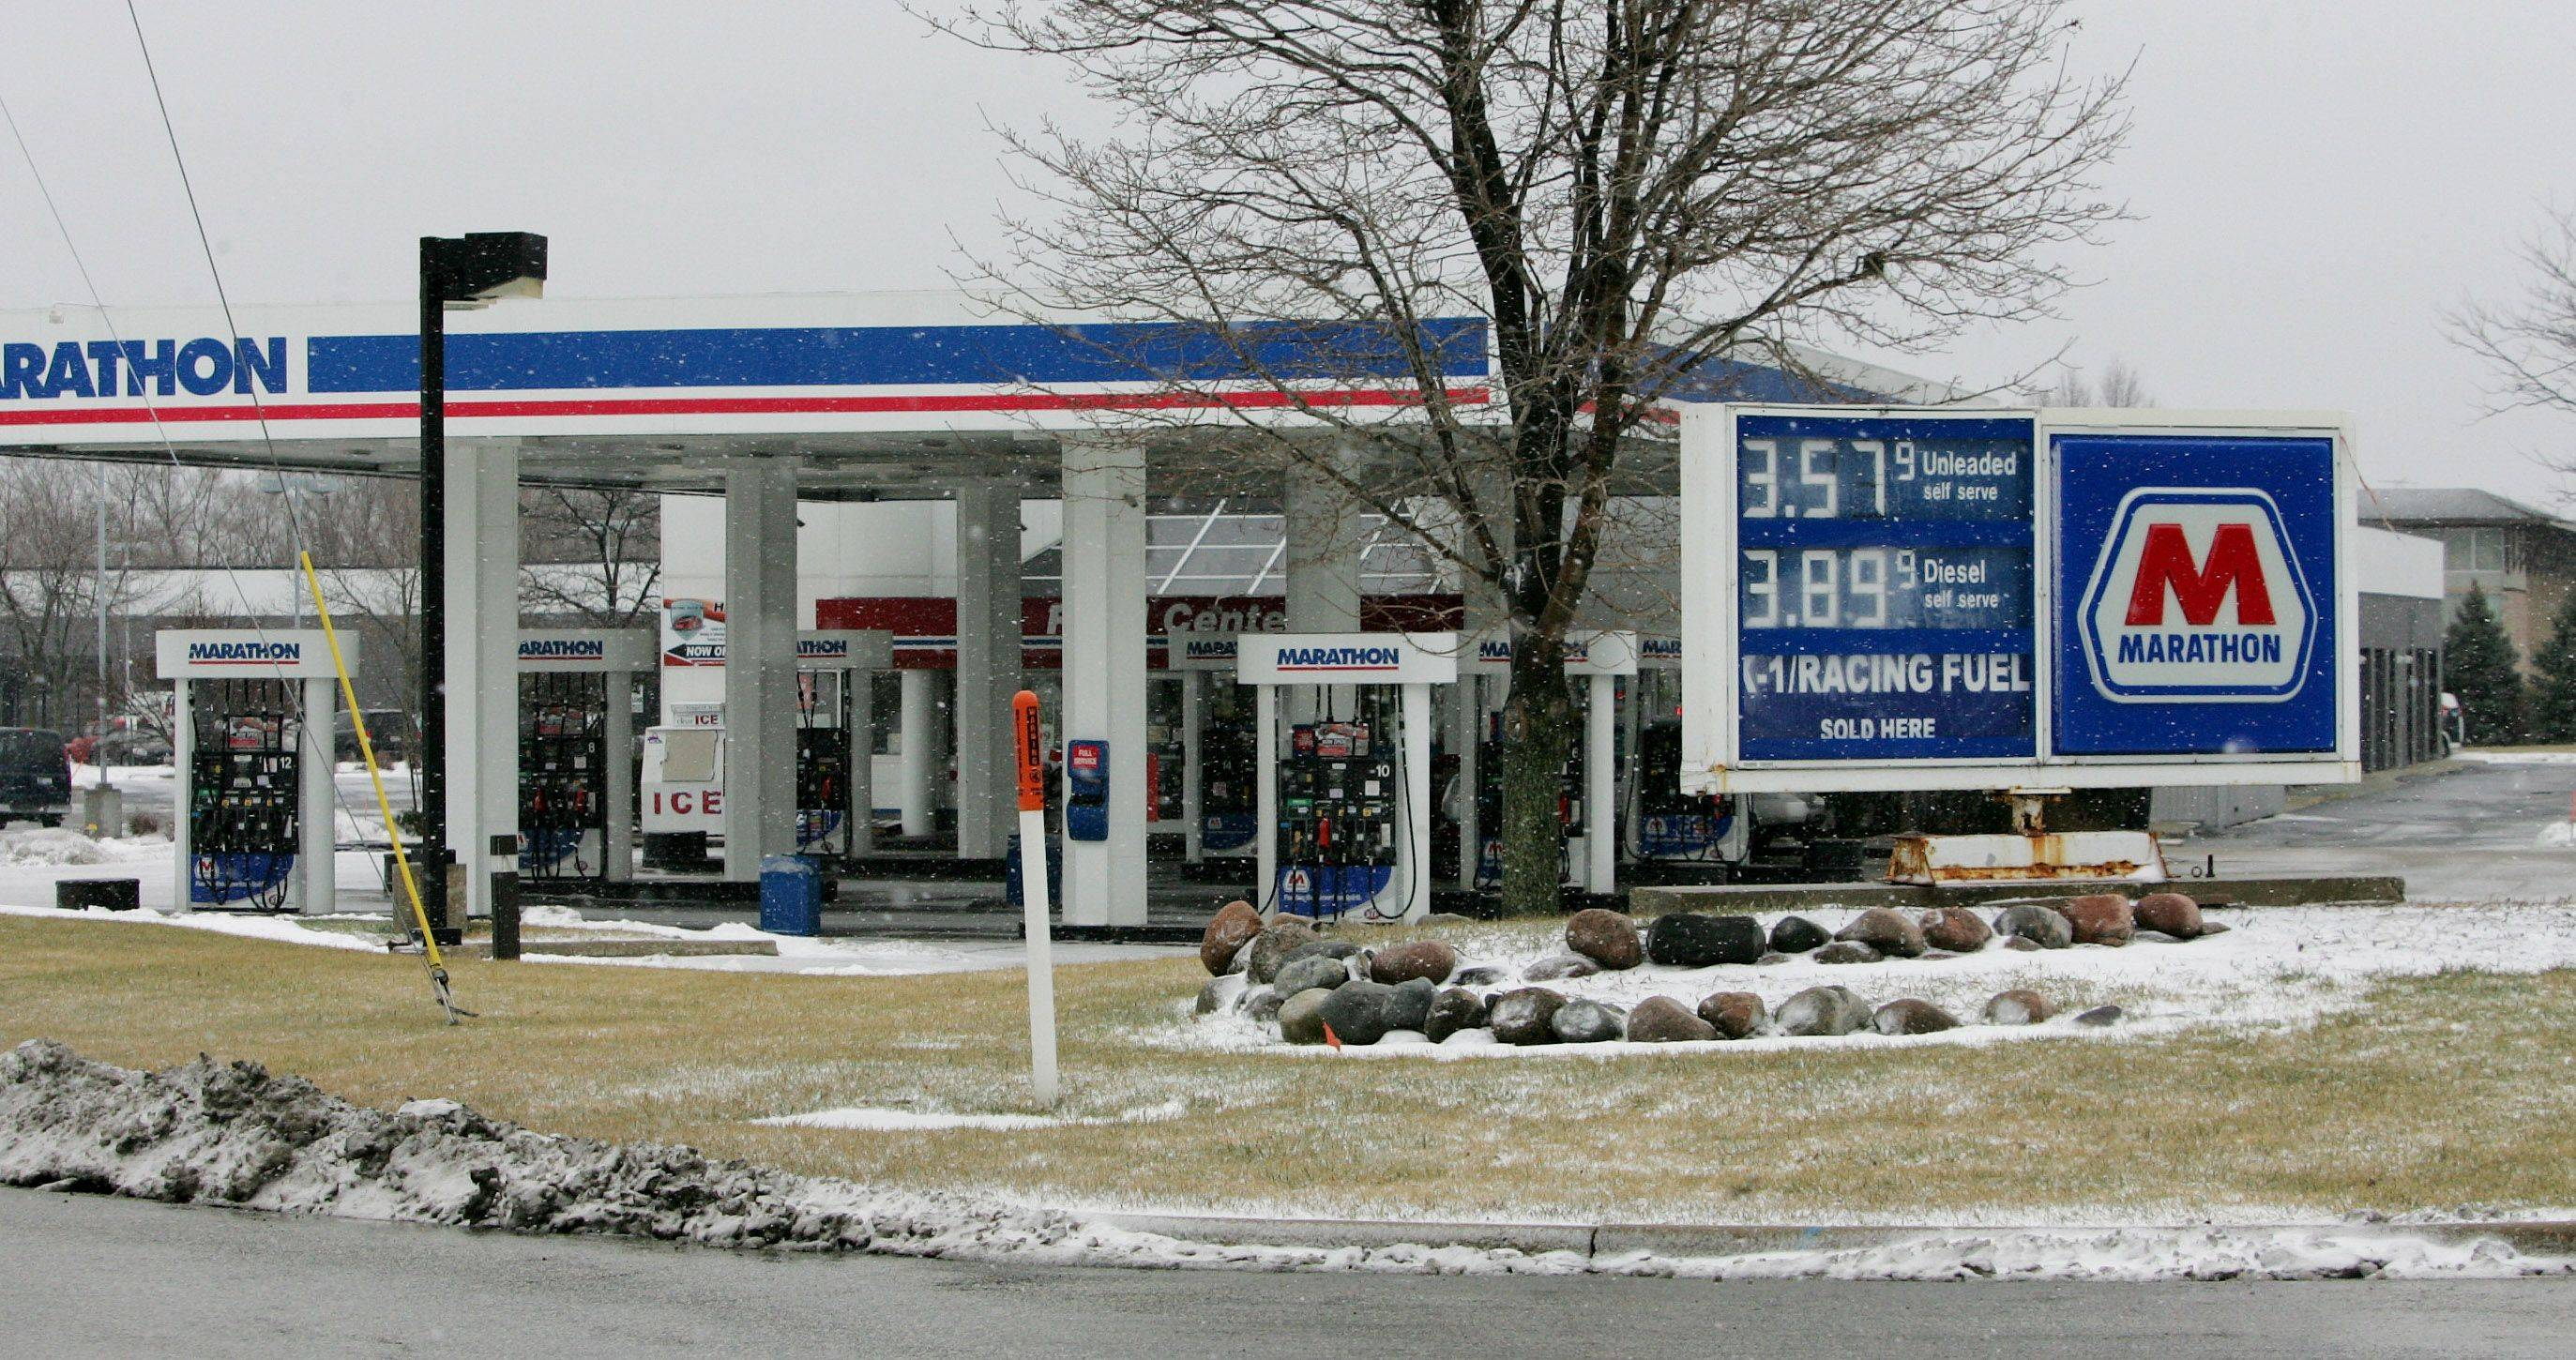 This Marathon gas station in Mundelein is one of 80 suburban gas stations that have had at least one fuel line fail inspection by the state each of the past three years.